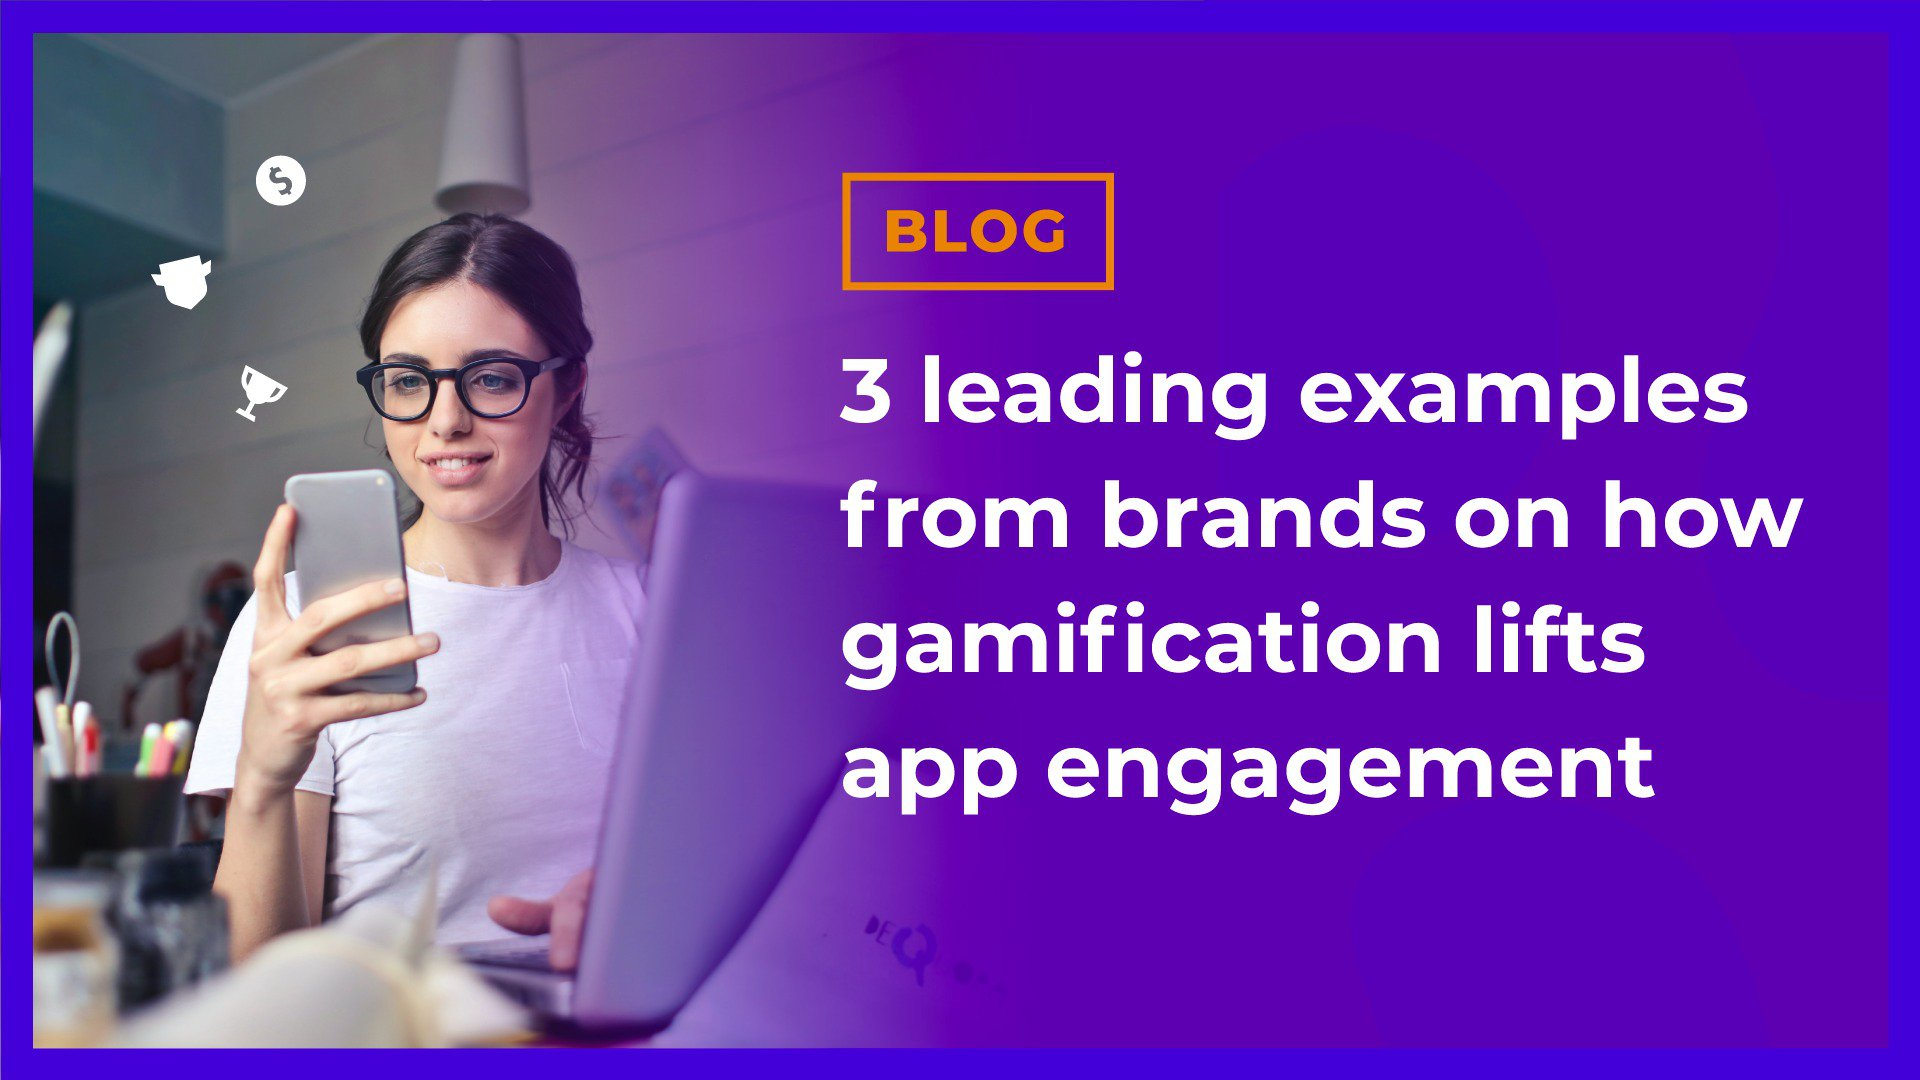 3 leading examples from brands on how gamification lifts app engagement